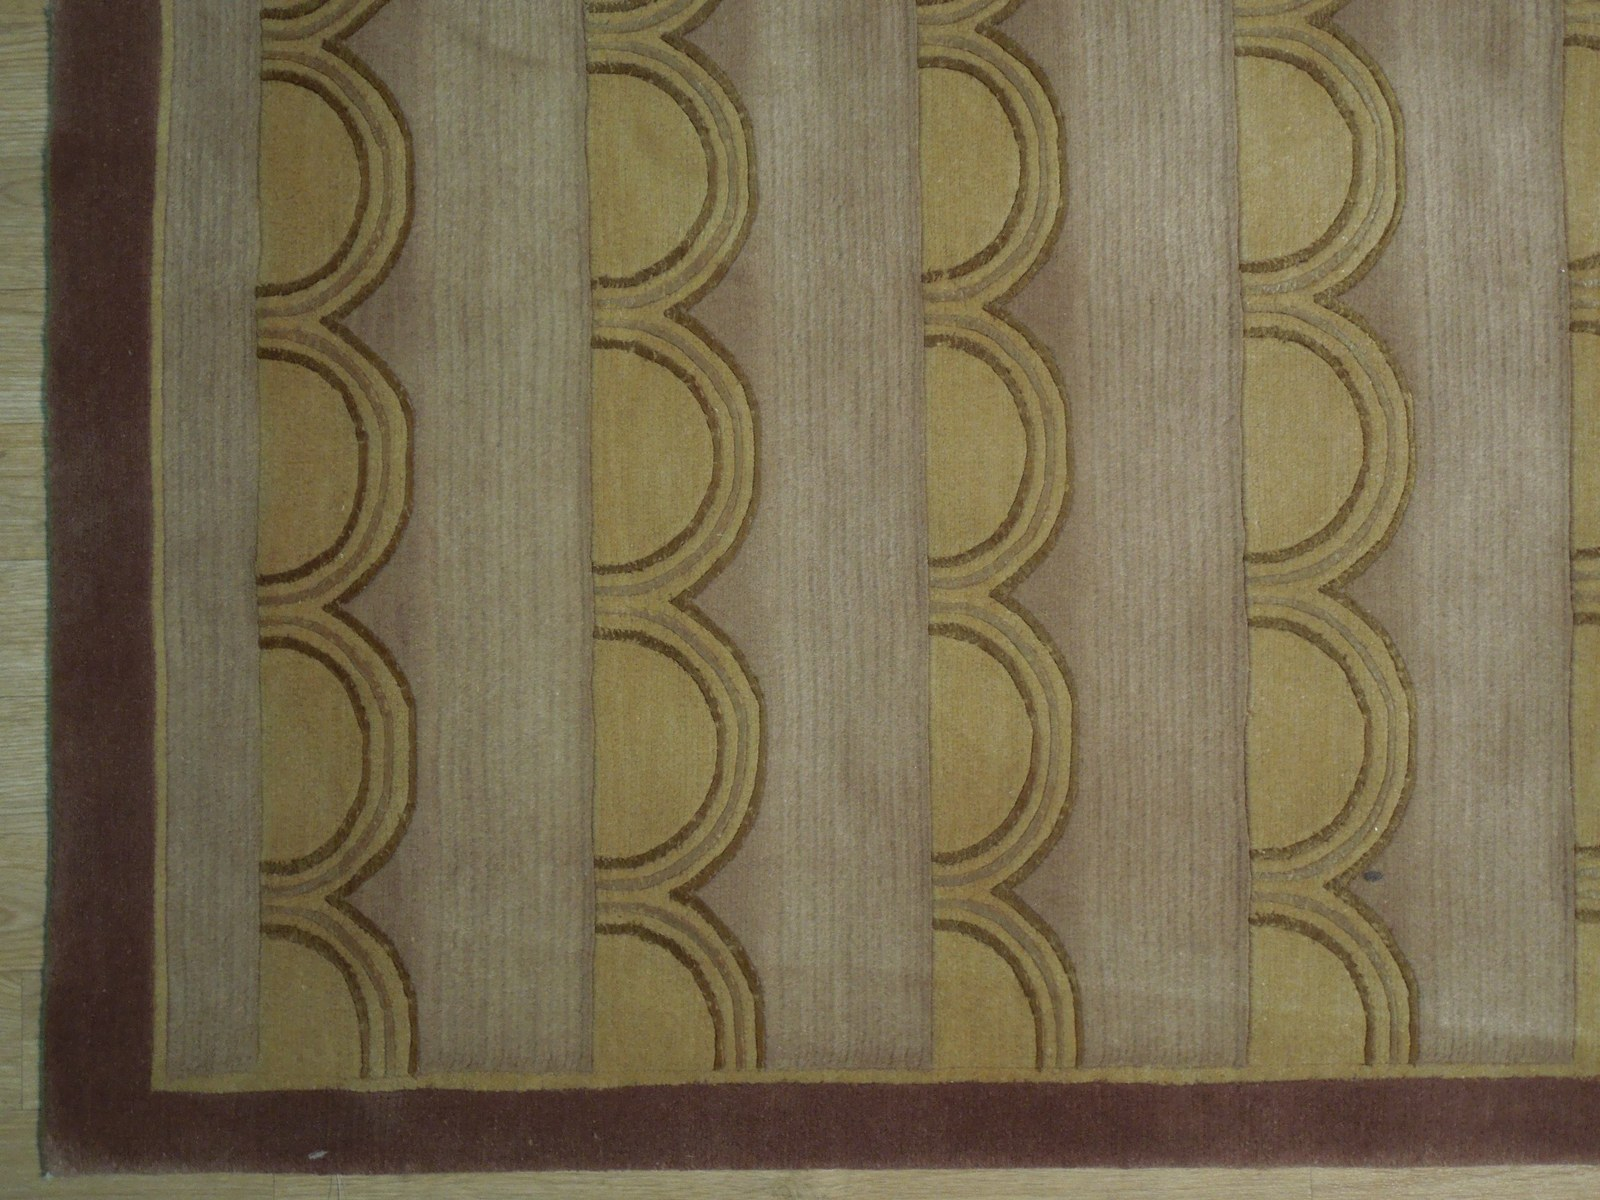 Beige Rug 5 x 8 Wool & Silk Centered Waves Nepalese Hand-Knotted Rug image 6